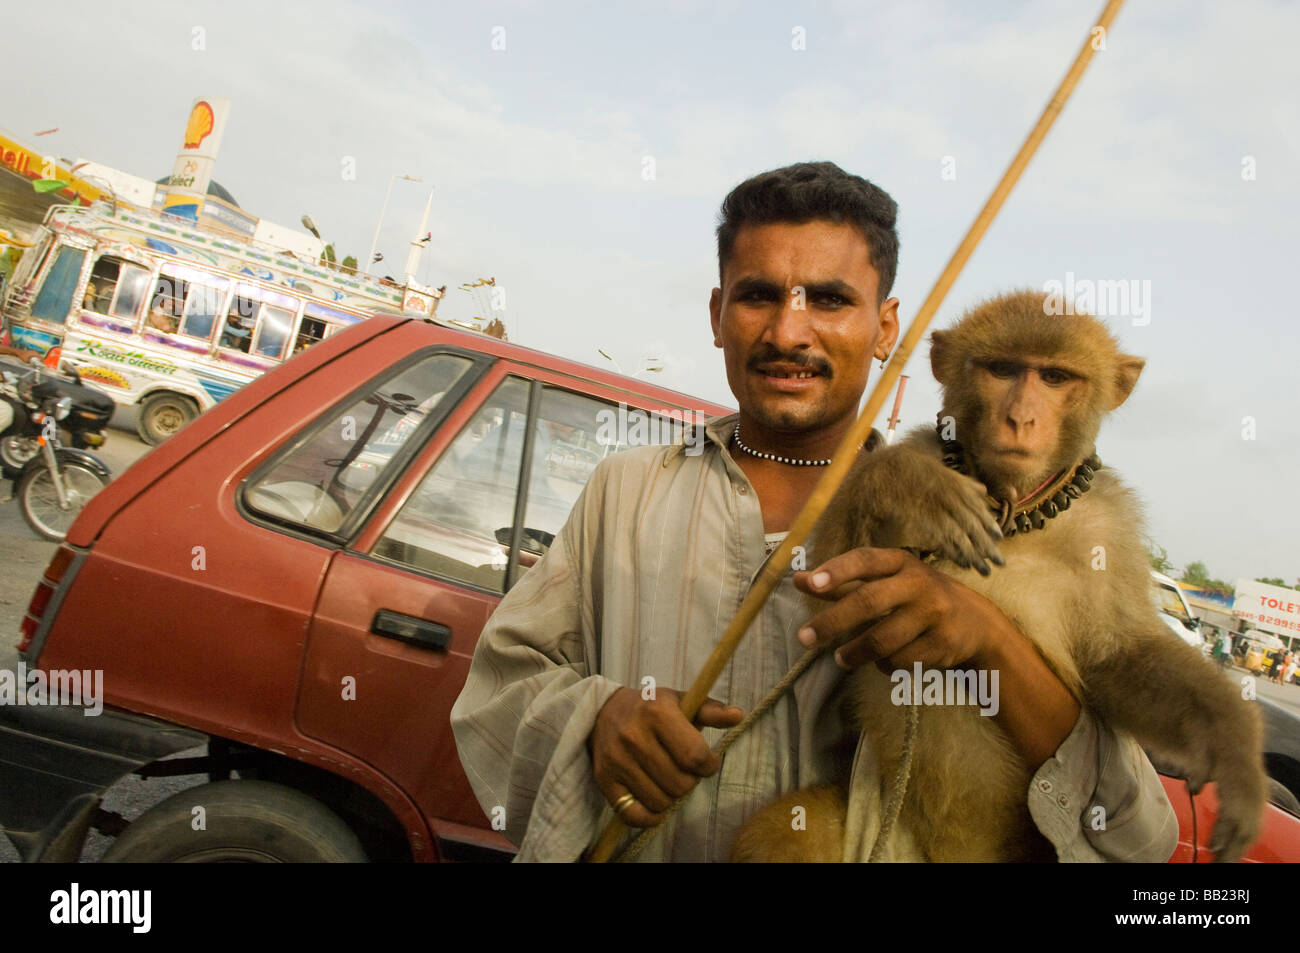 Man and monkey, karachi pakistan - Stock Image